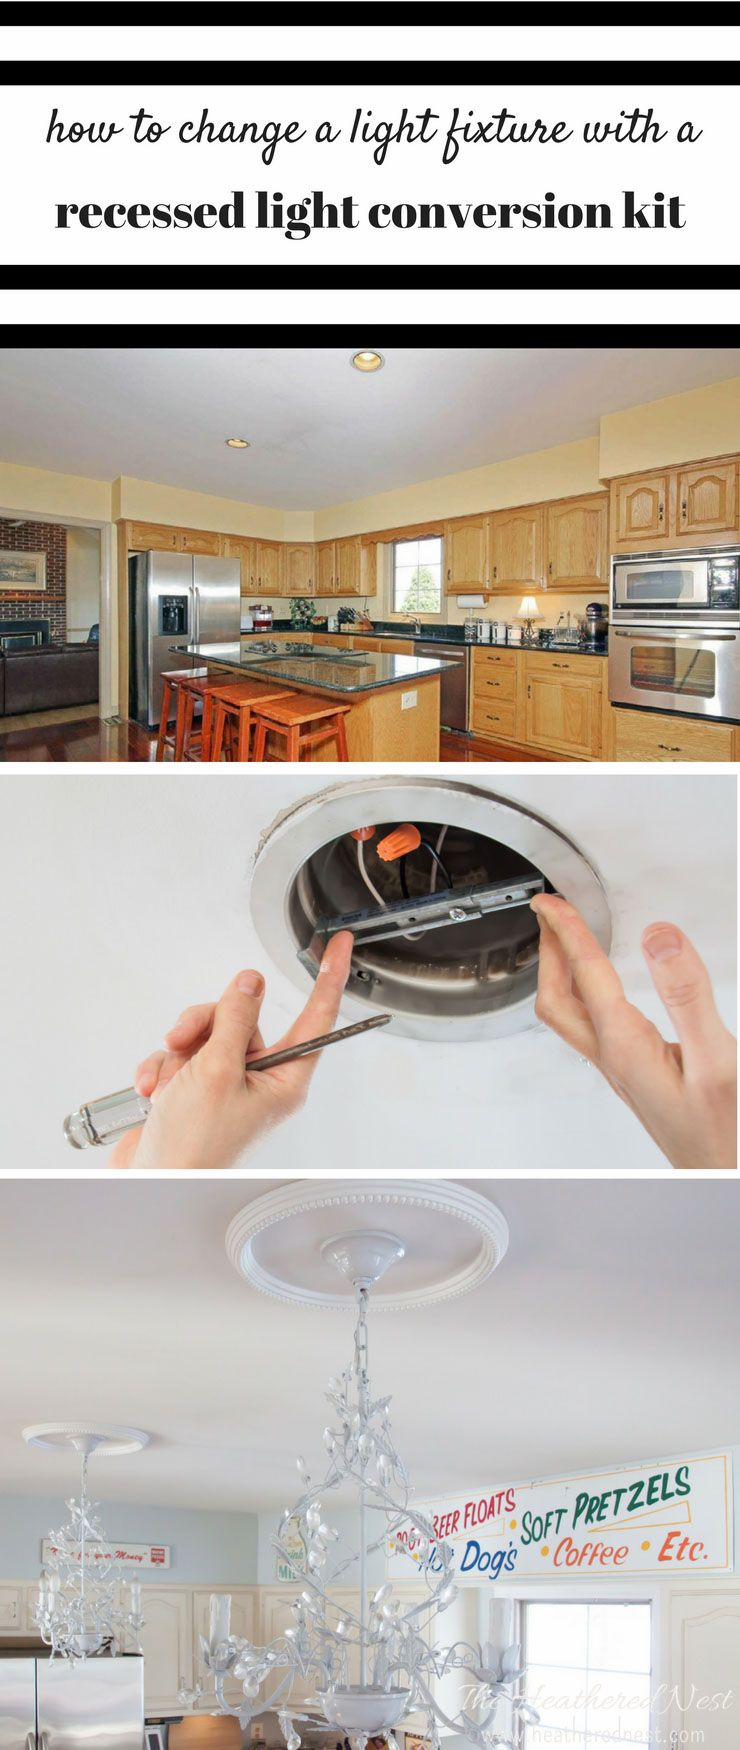 How To Change A Light Fixture Using A Recessed Light Conversion